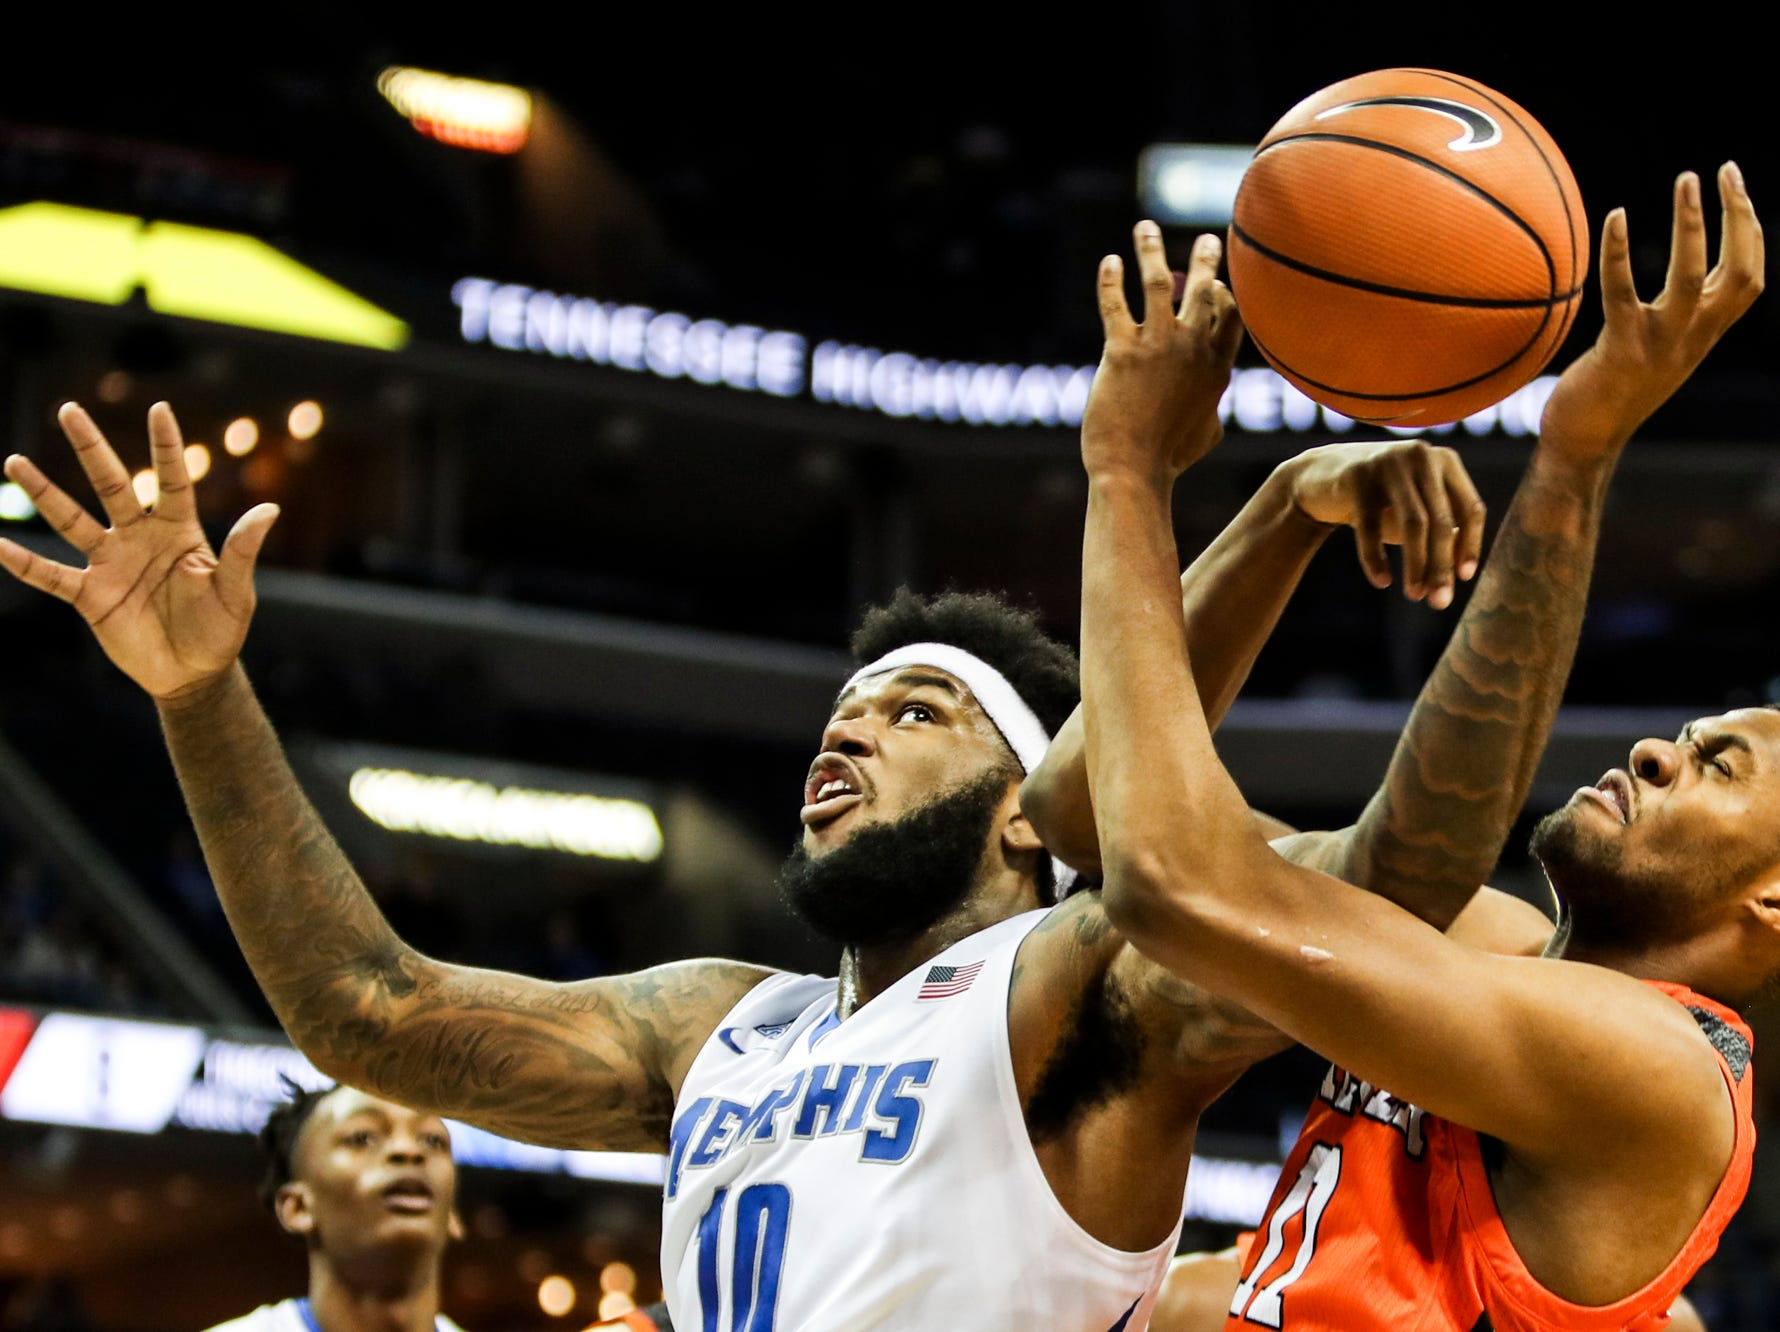 December 02, 2017 - Memphis' Mike Parks Jr. battles for a rebound against Mercer's Ryan Johnson during Saturday's game at the FedExForum.